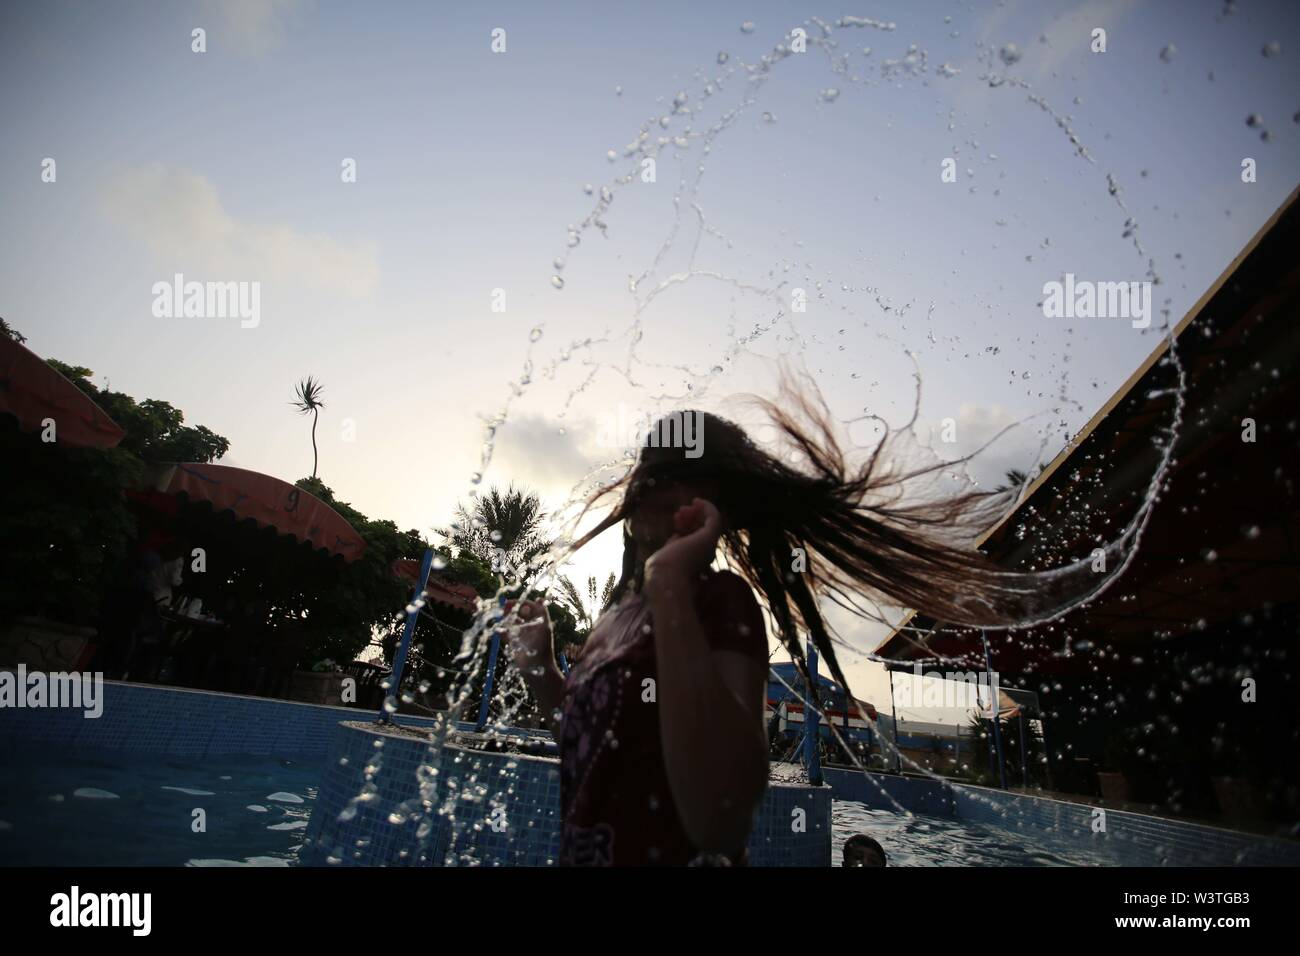 Gaza City, The Gaza Strip, Palestine. 17th July, 2019. A Palestinian girl wave her wet hair at a swimming pool on a hot day in the Gaza Strip. Credit: Hassan Jedi/Quds Net News/ZUMA Wire/Alamy Live News - Stock Image